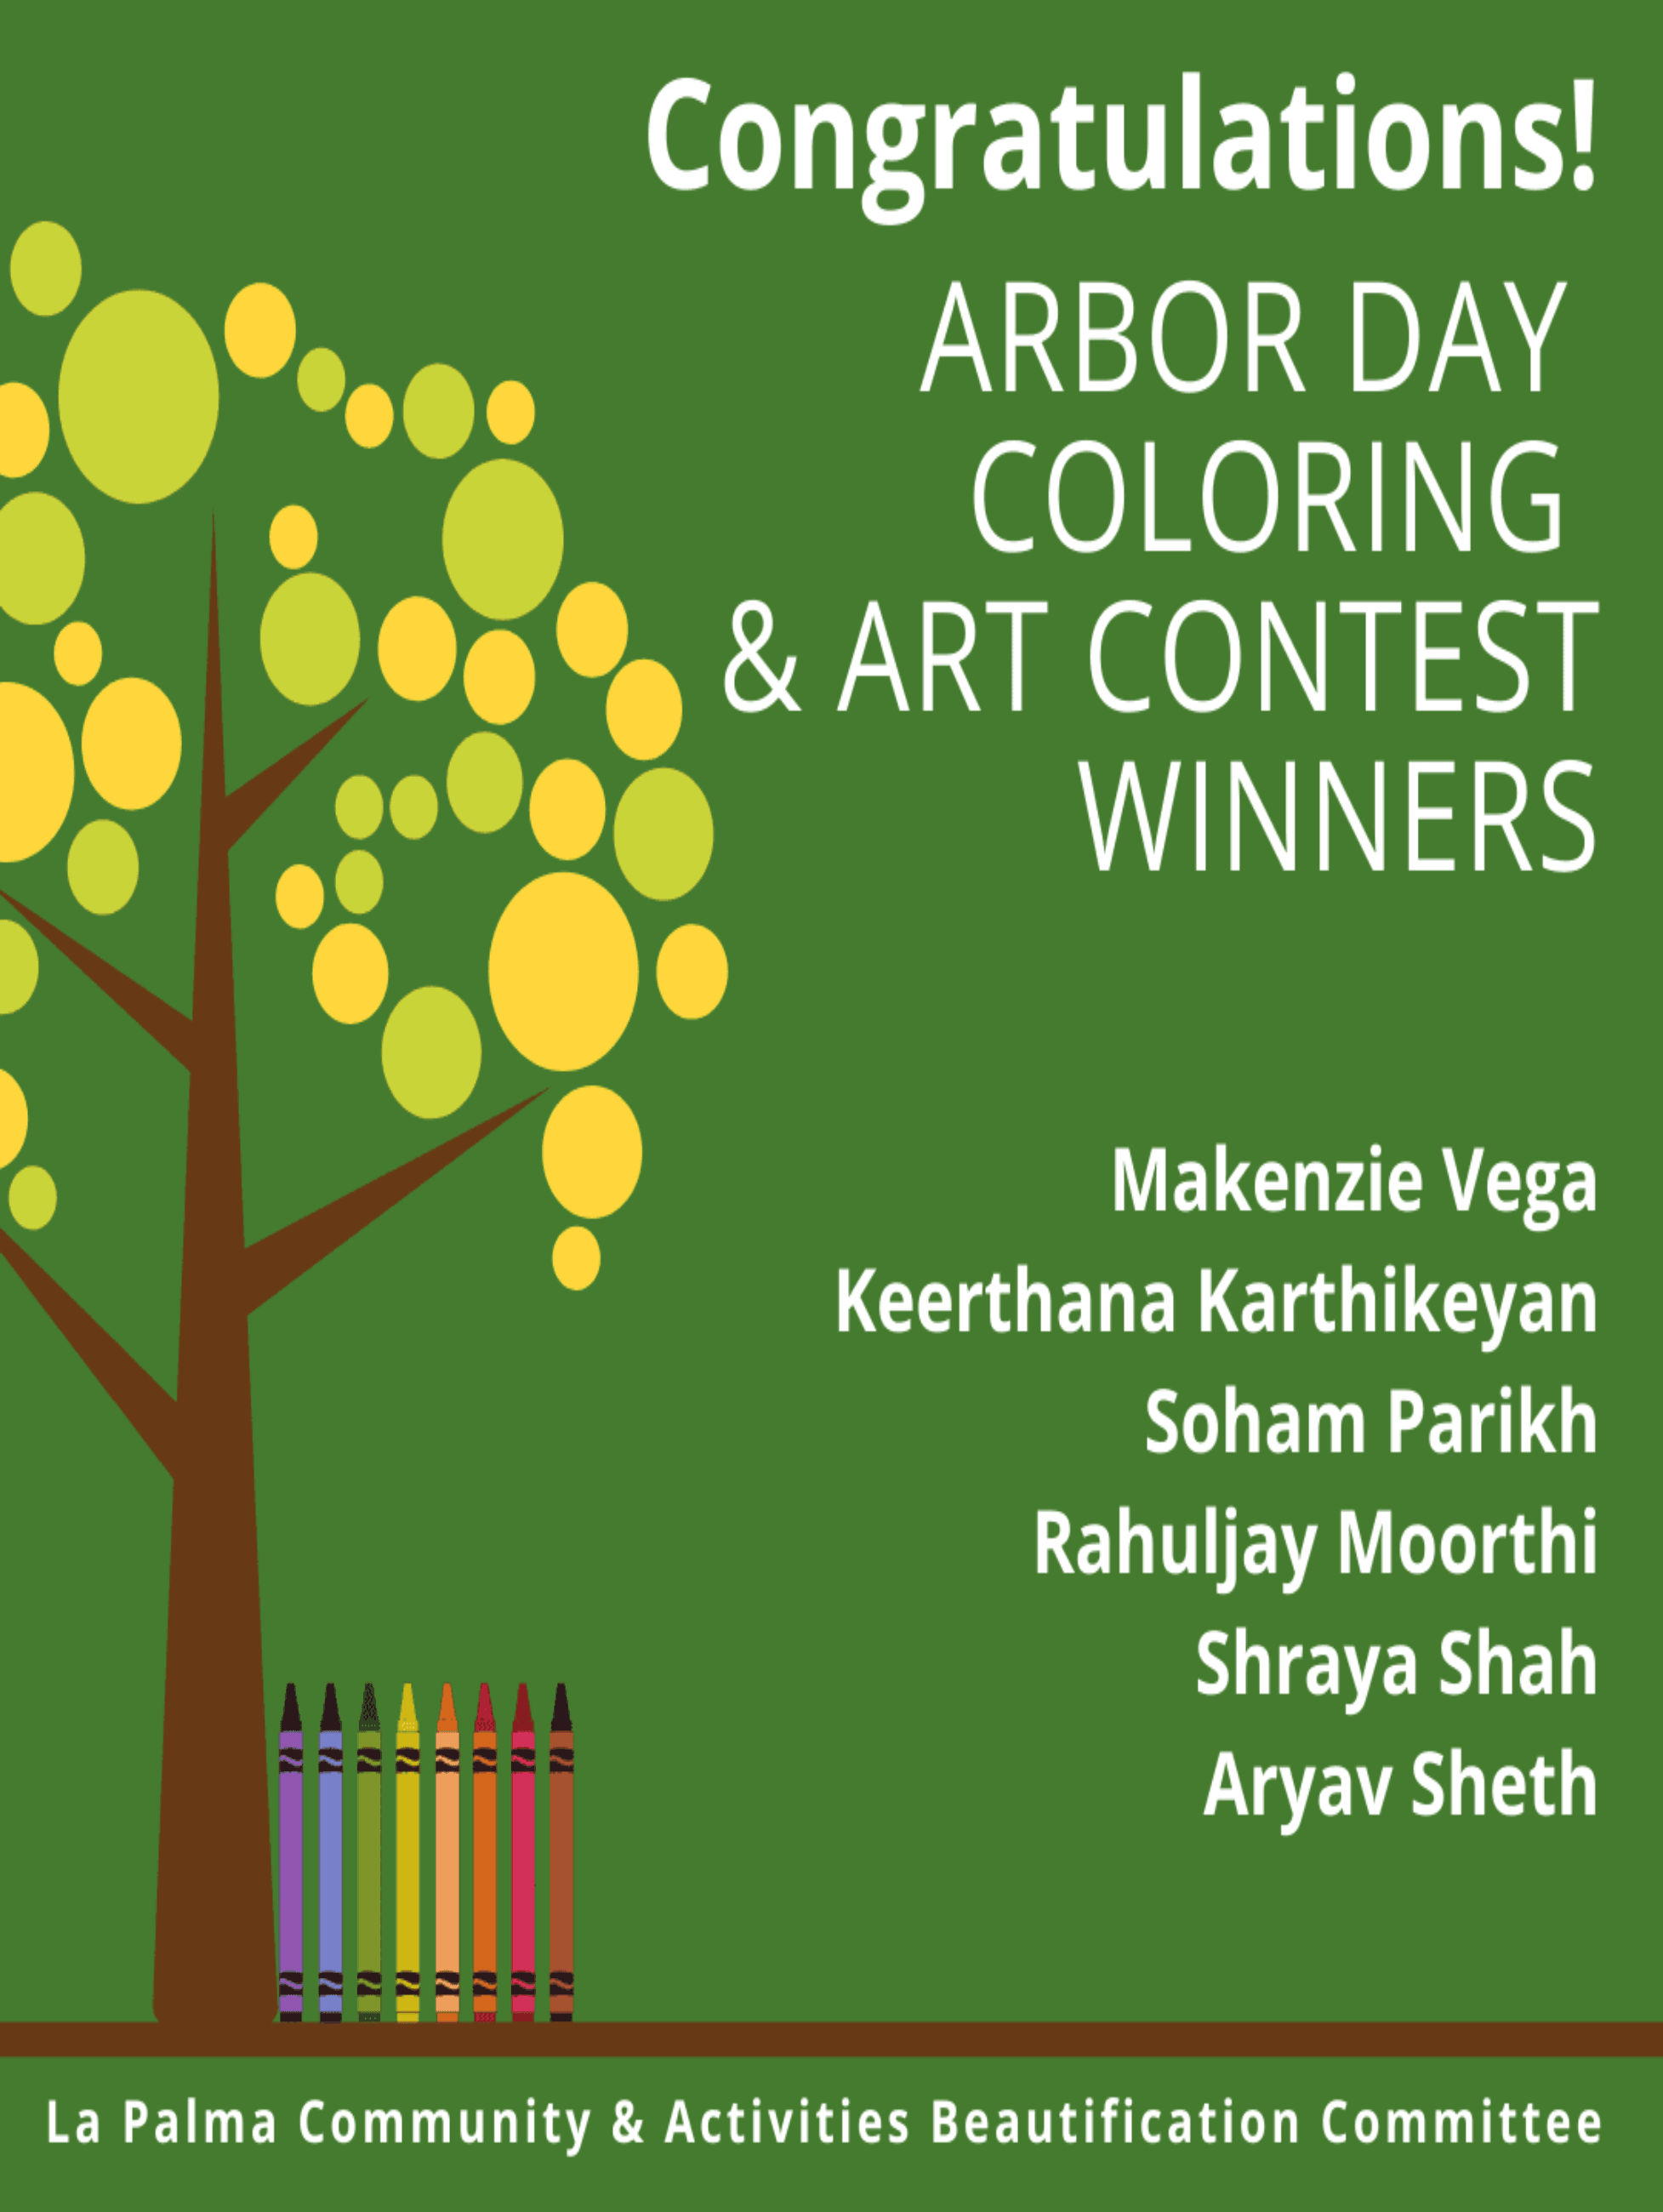 Winners of Arbor Day Coloring Contest